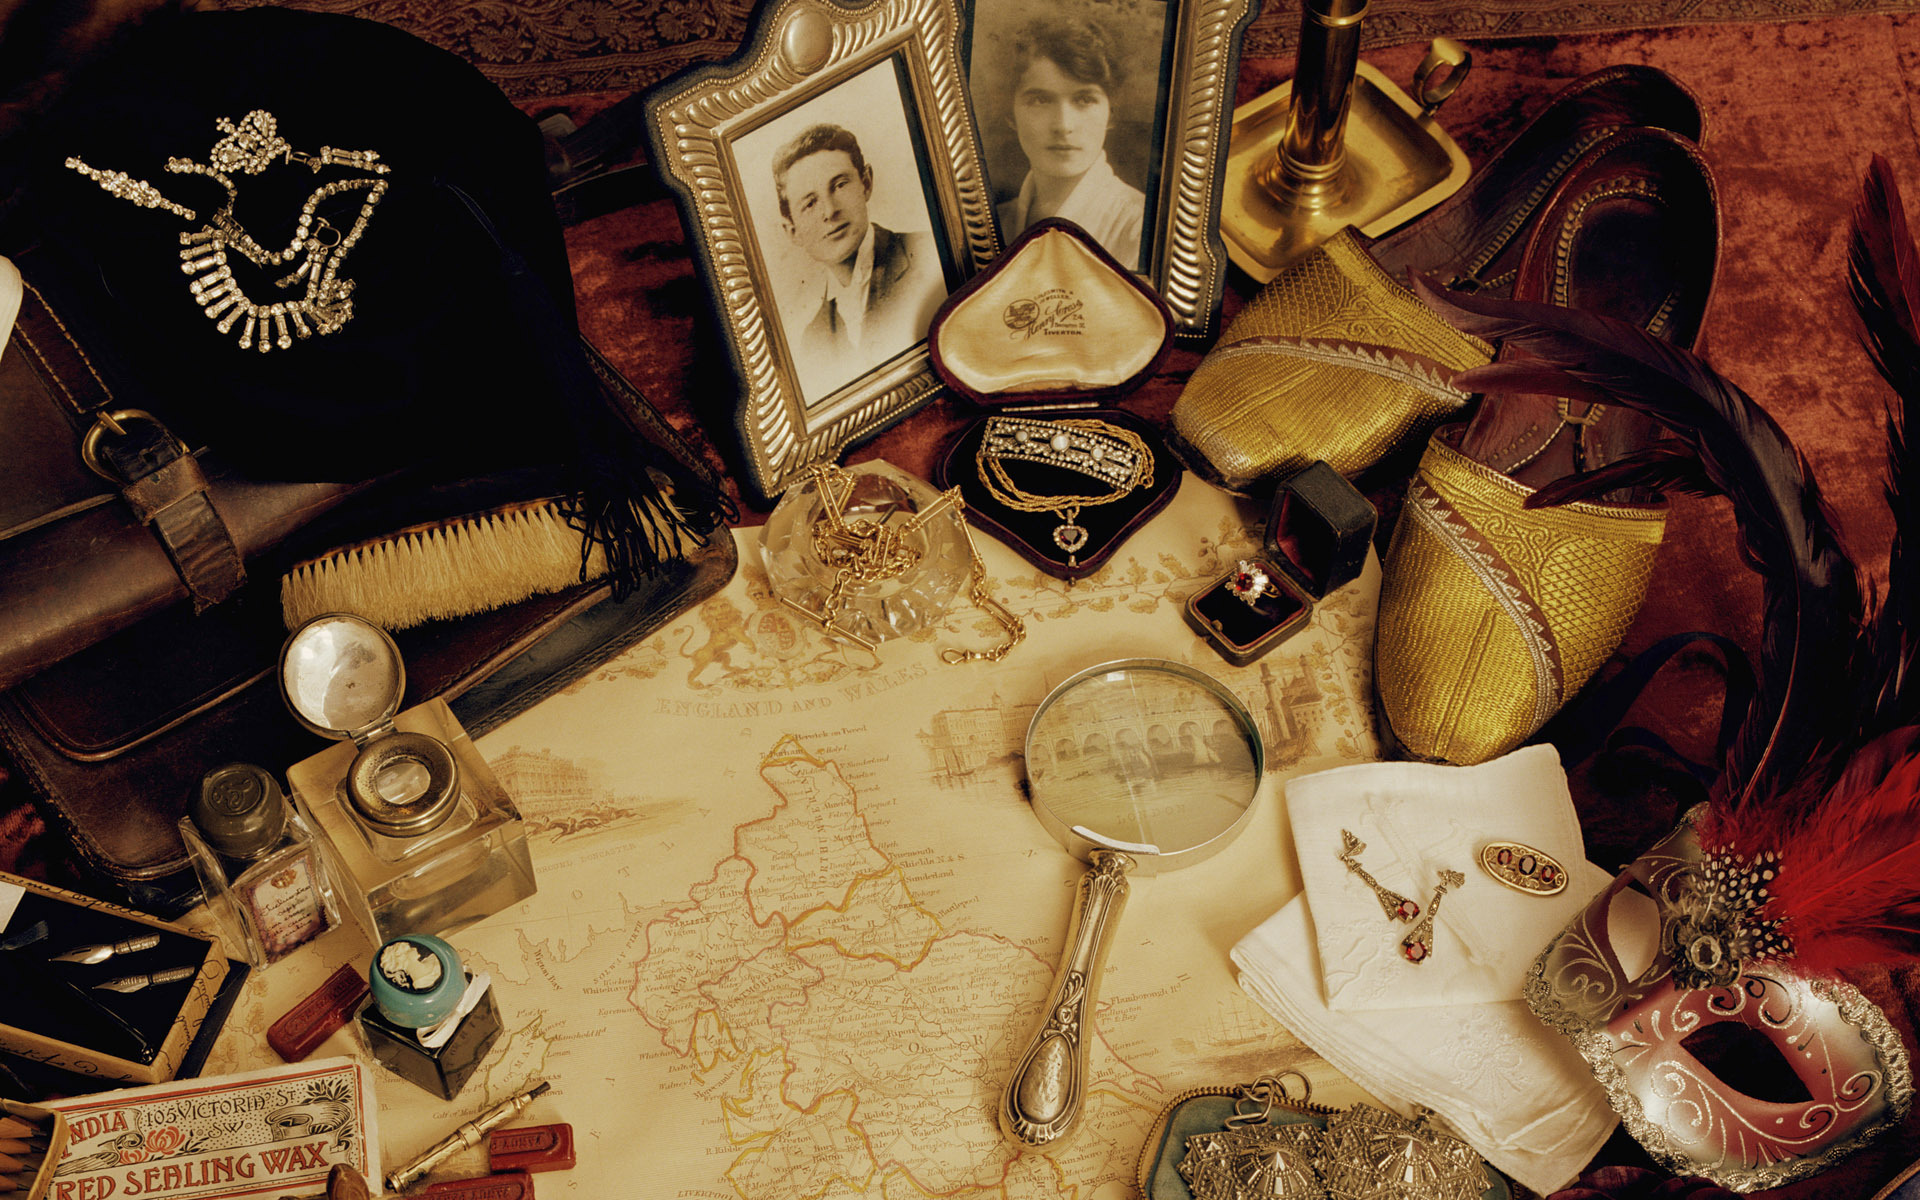 retro vintage photography hd wallpapers best background images 1592